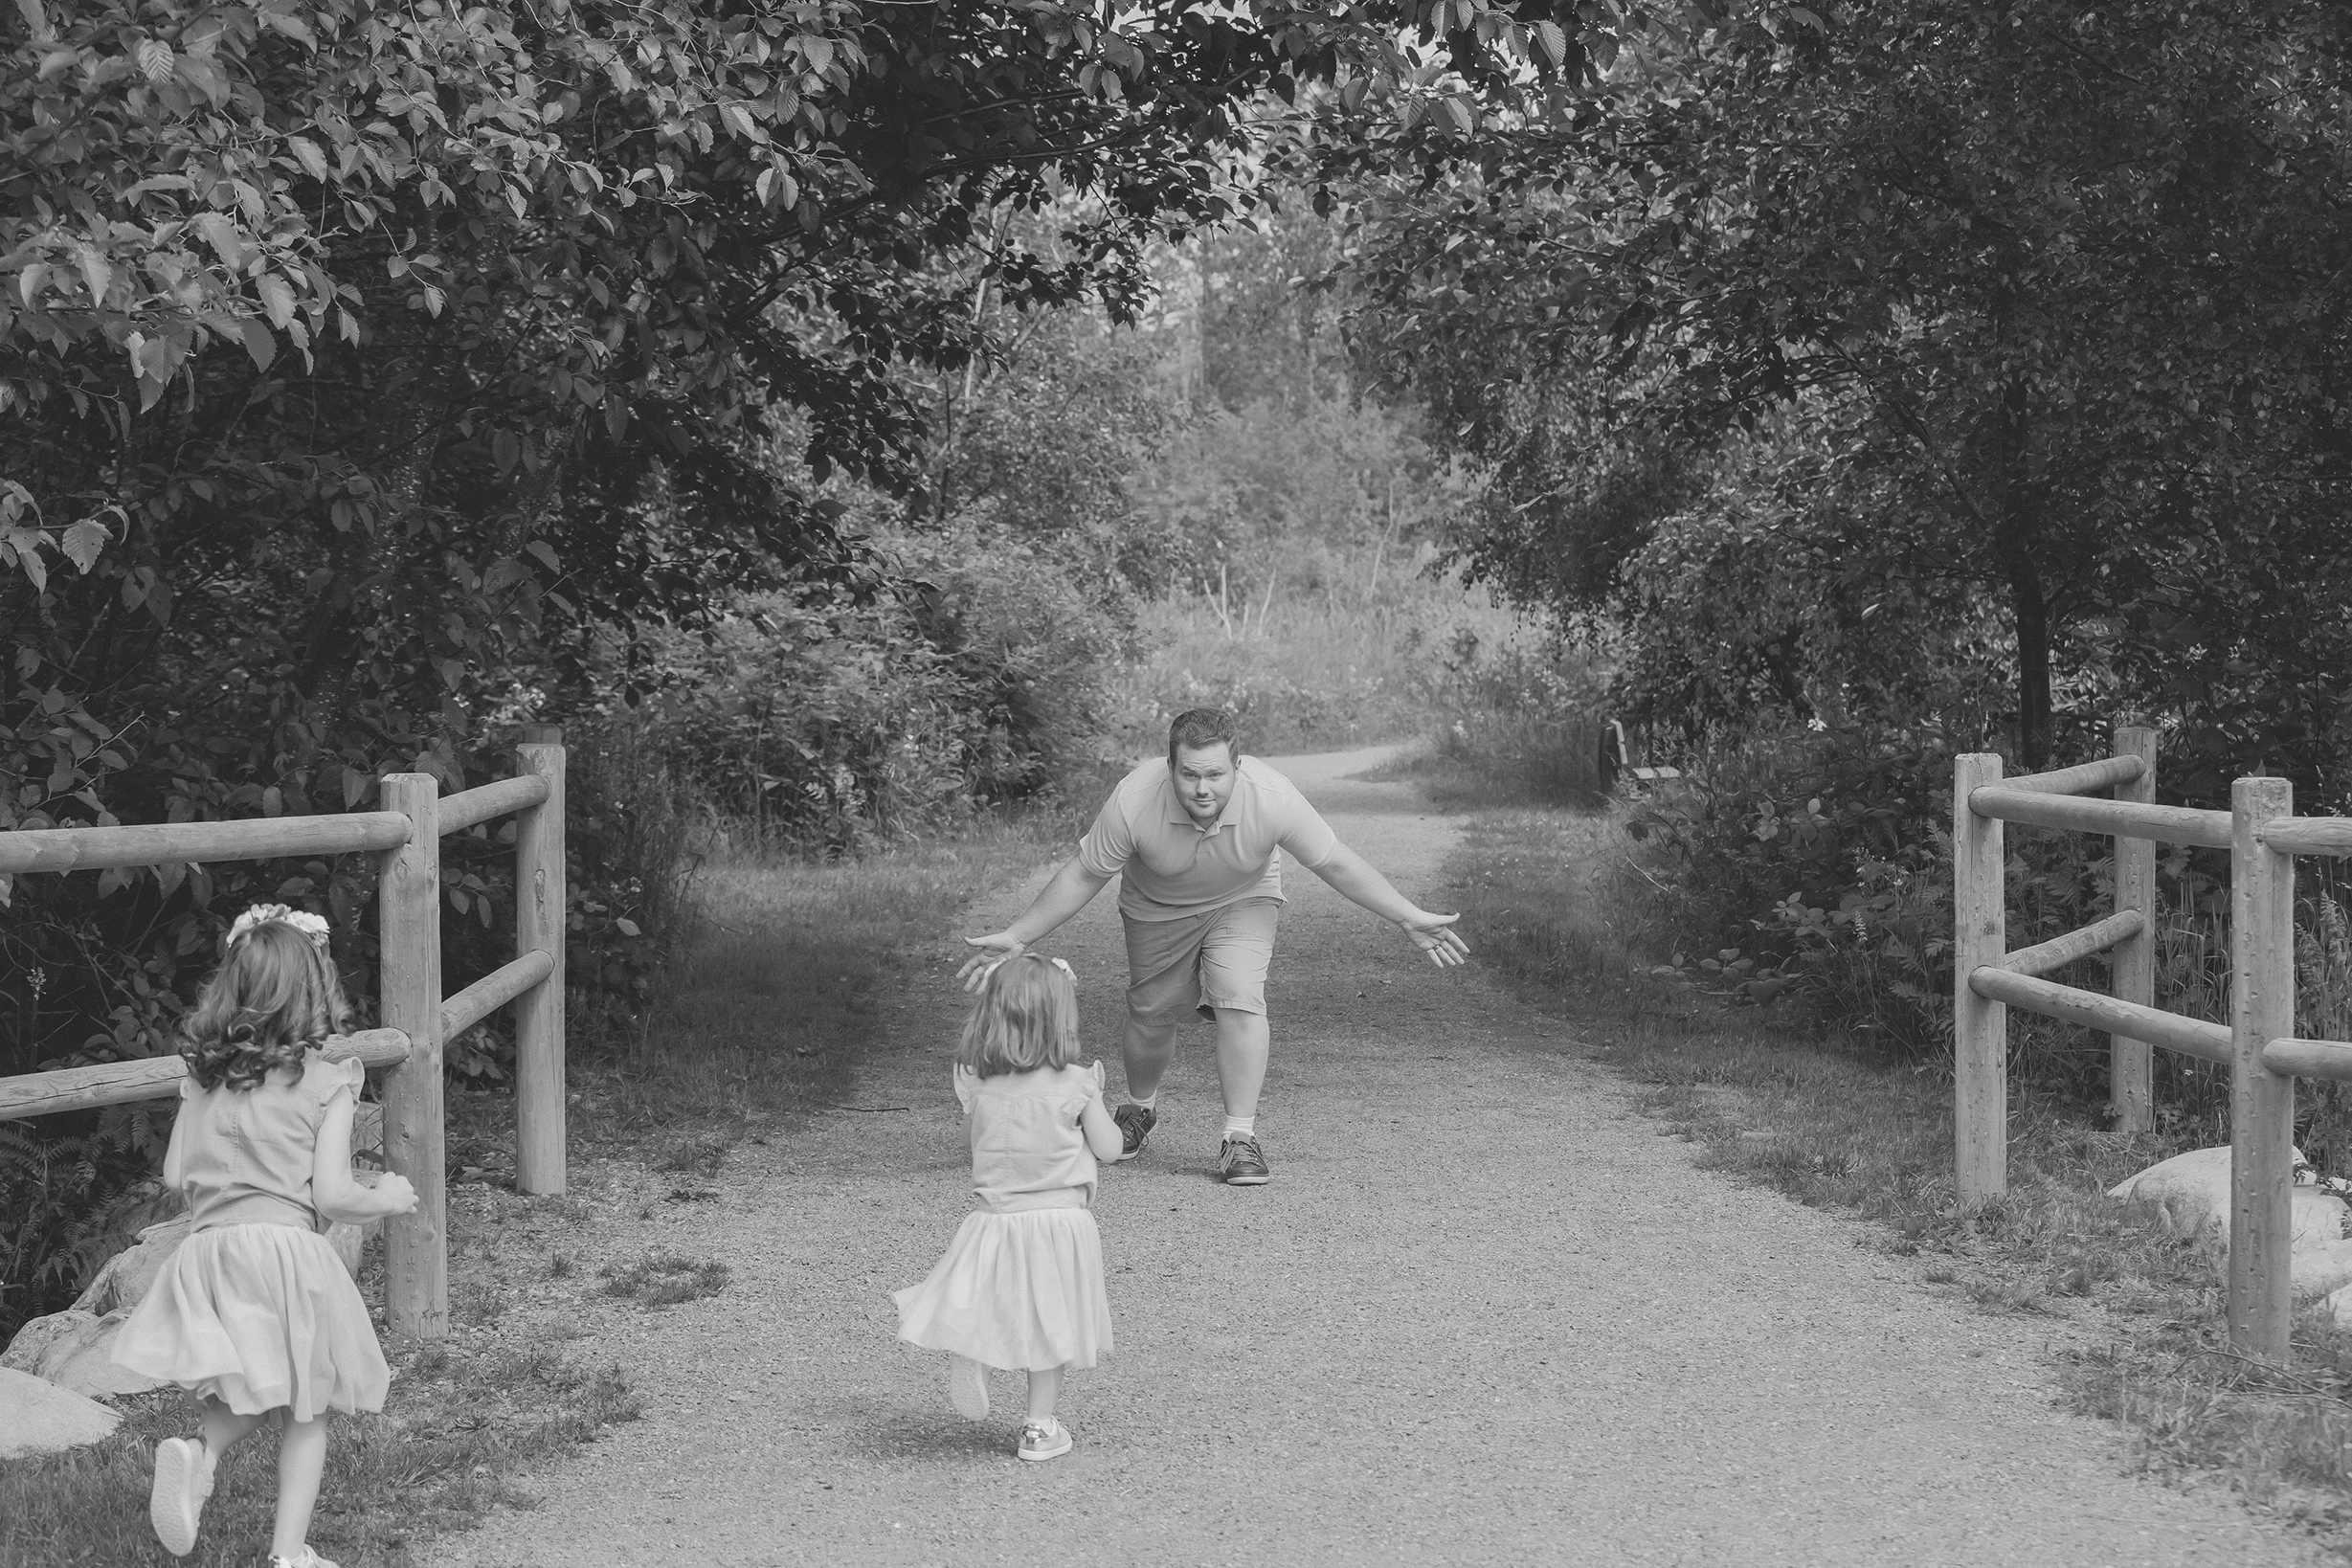 Family Photos June 2017 - BW (37 of 154).jpg